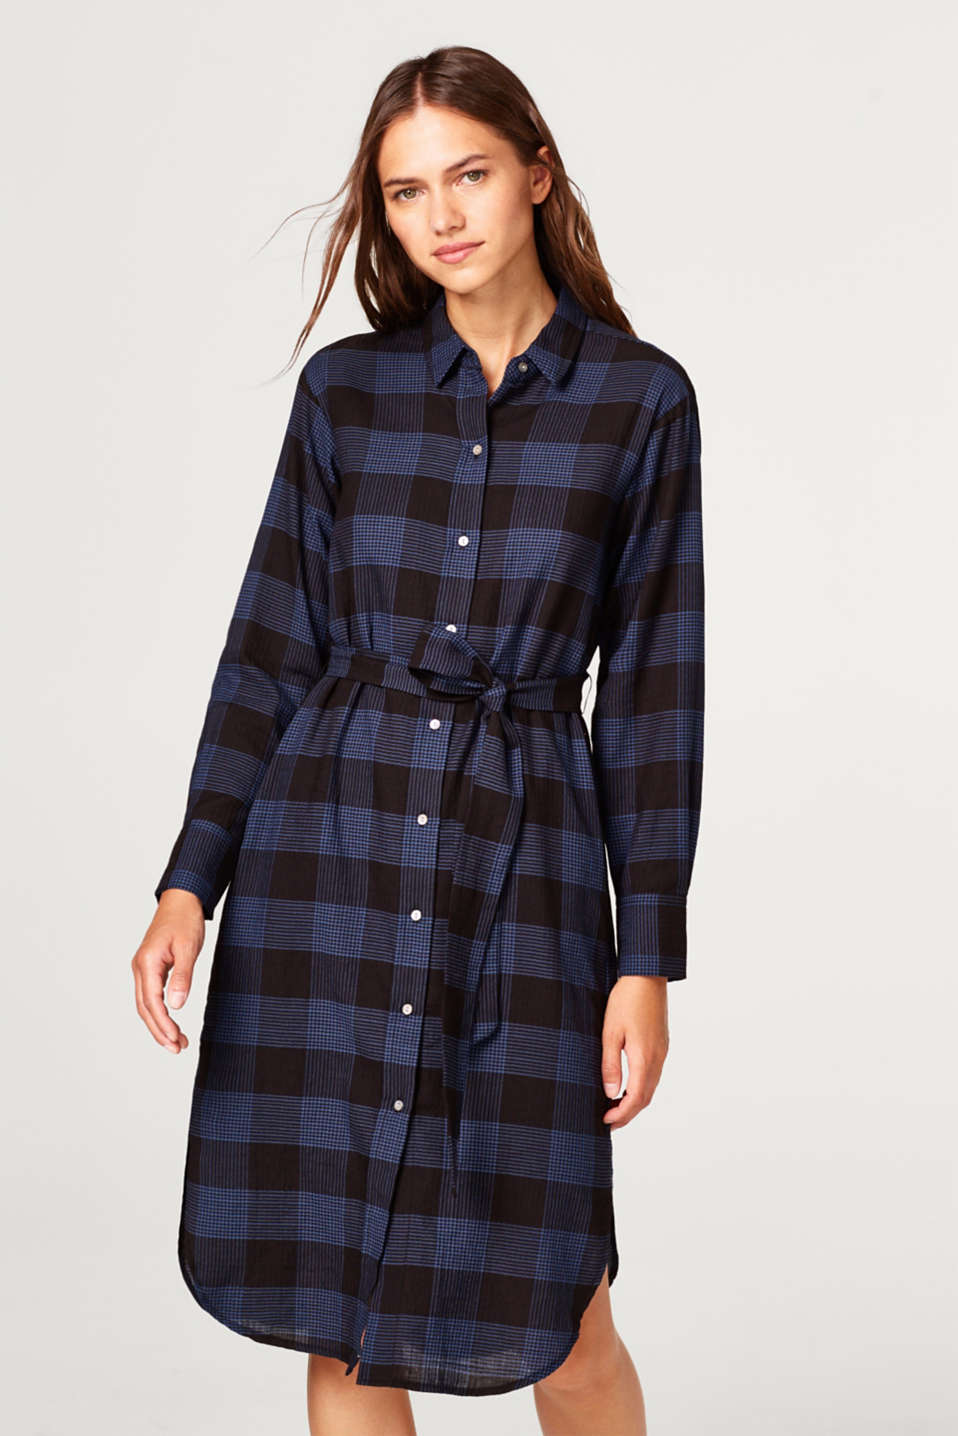 Esprit - Cotton check shirt dress